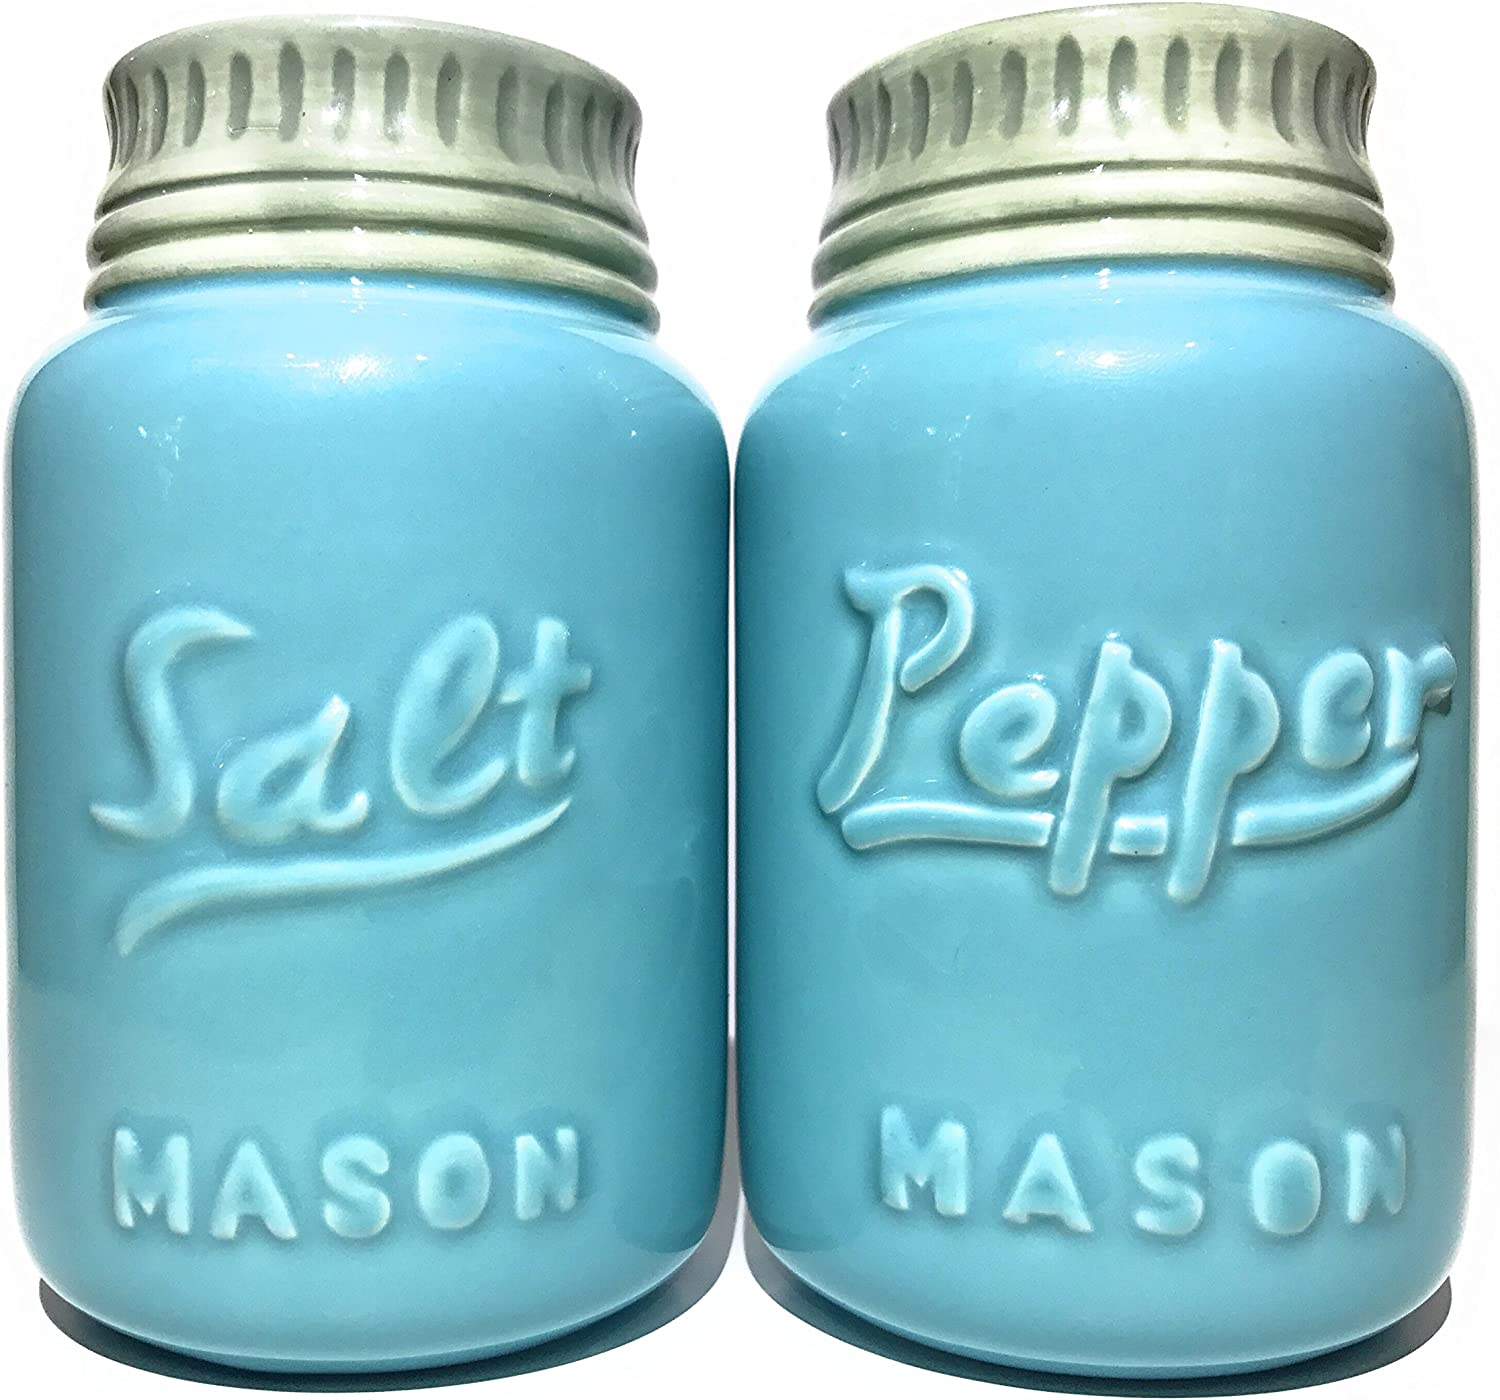 Rustic Ceramic Mason Jar Salt and Pepper Shaker Set - Vintage Style Blue - Retro Antique Farmhouse Decor - Nostalgic Country Ranch Home Kitchen Decoration Cabin Coffee Shop Cafe or Diner Shabby Chic